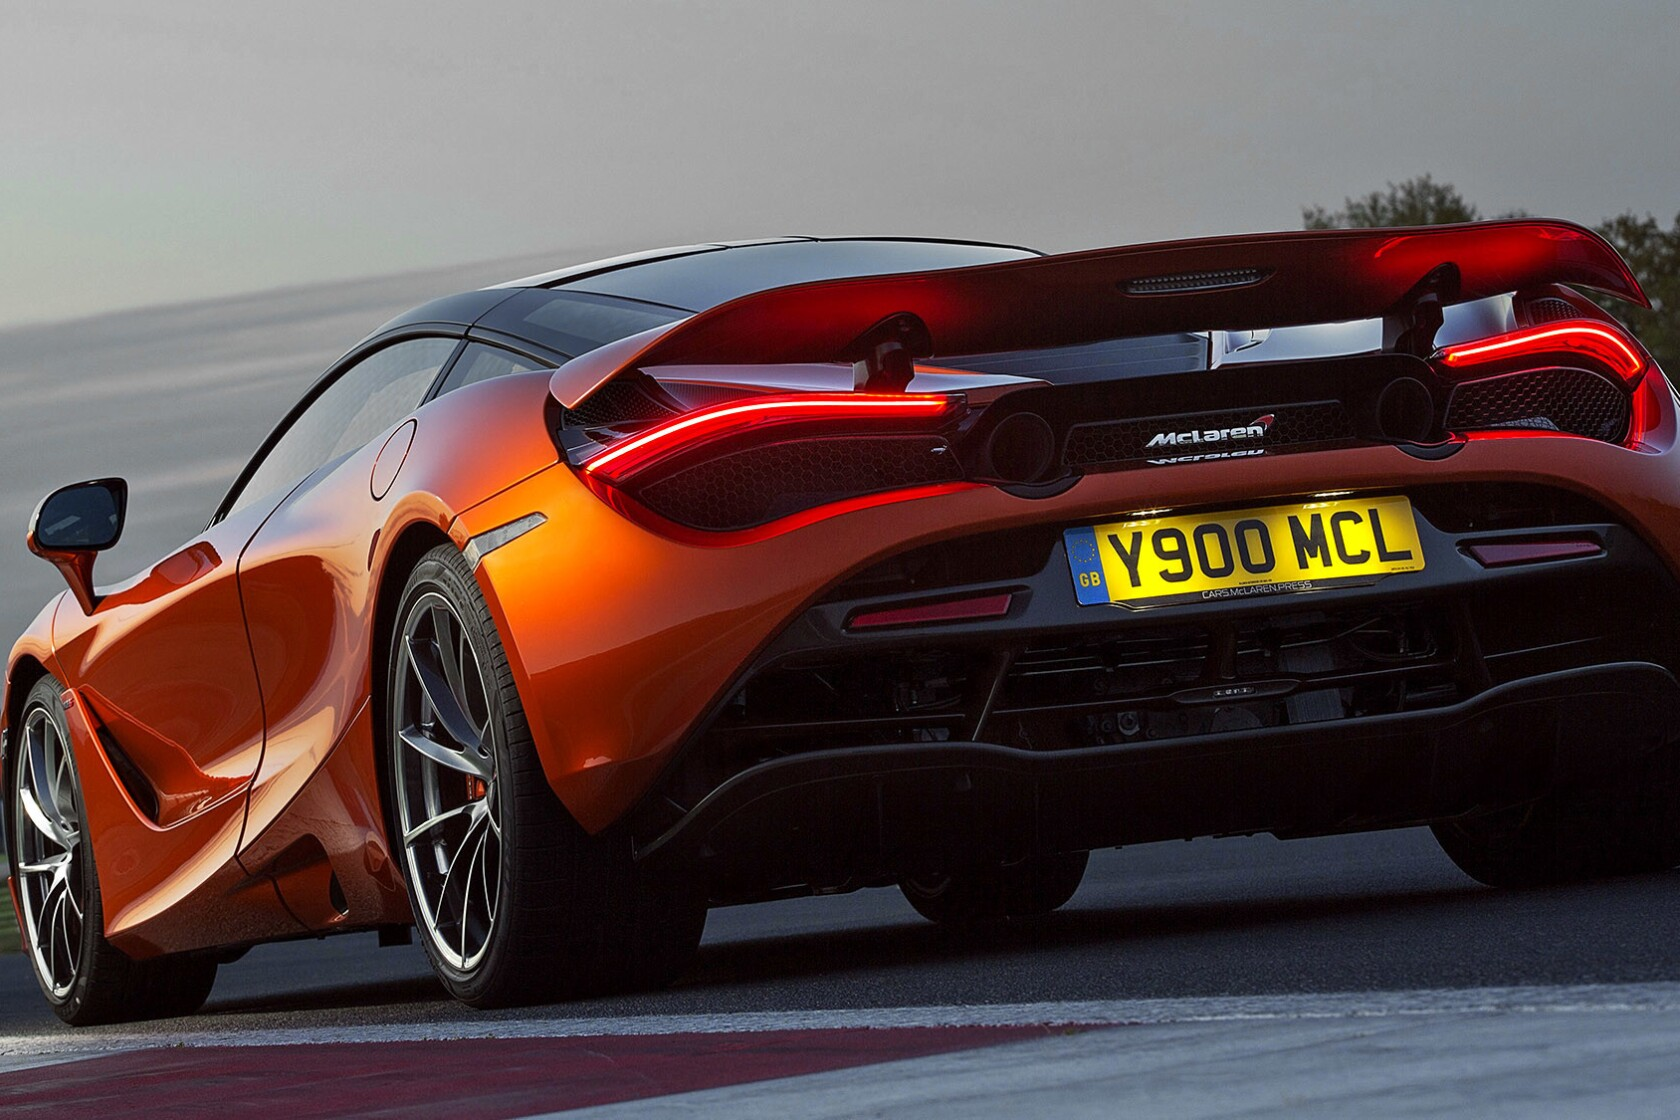 Review: McLaren 720S: How'd they make this thing street